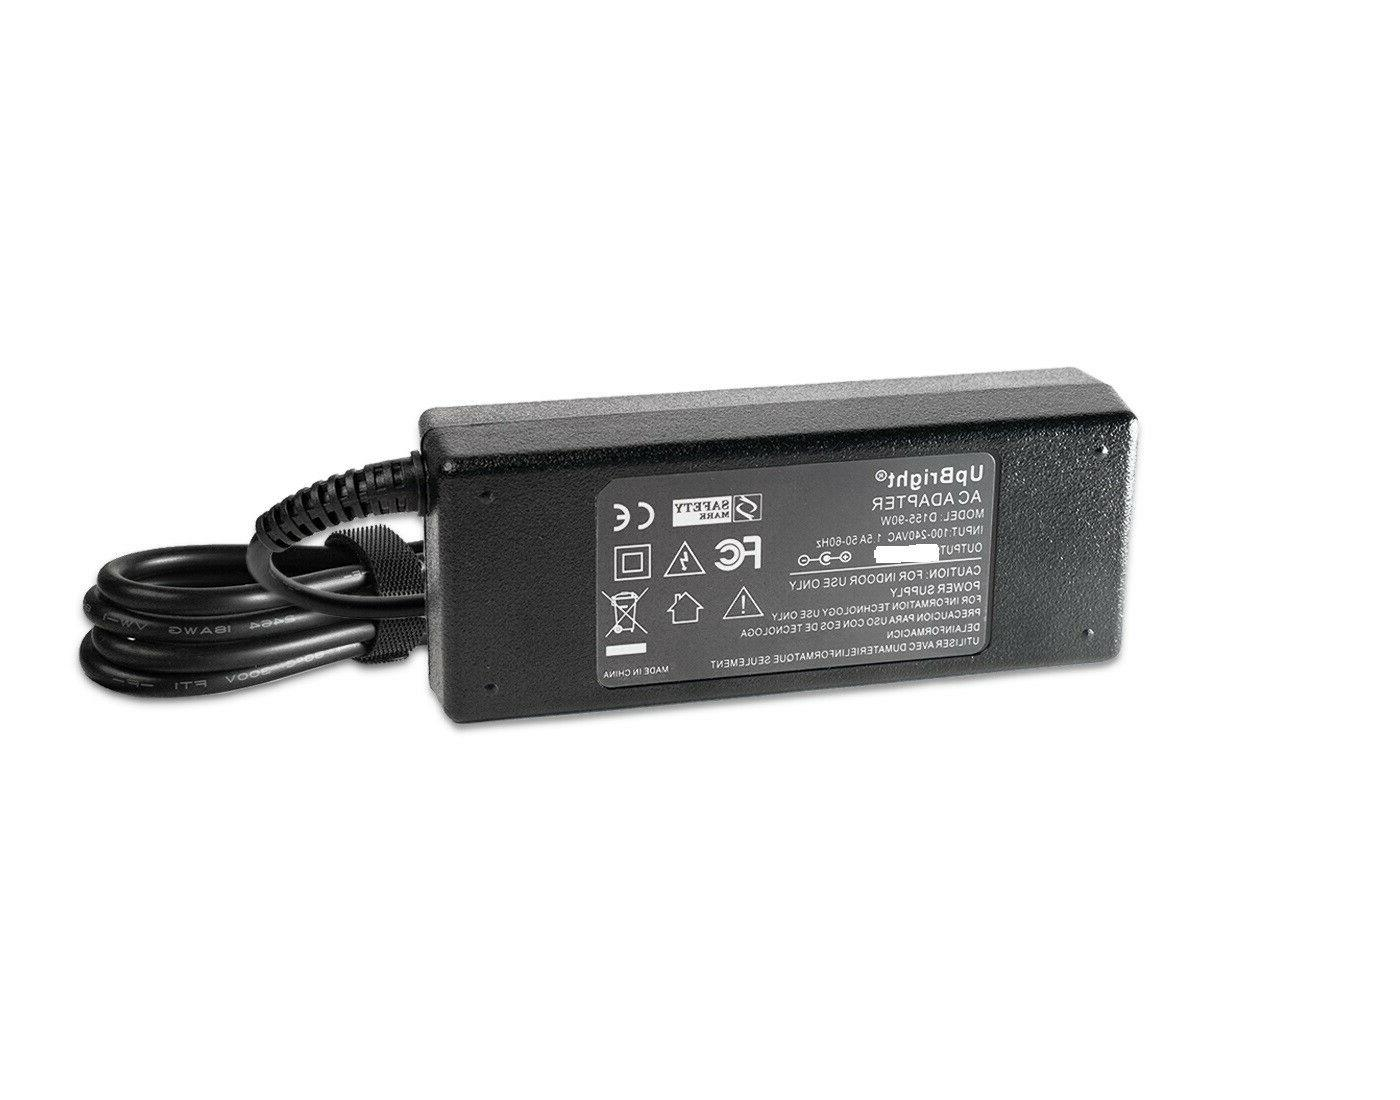 adapter for samsung un32j4000 un32j4000af un2j4000 hd